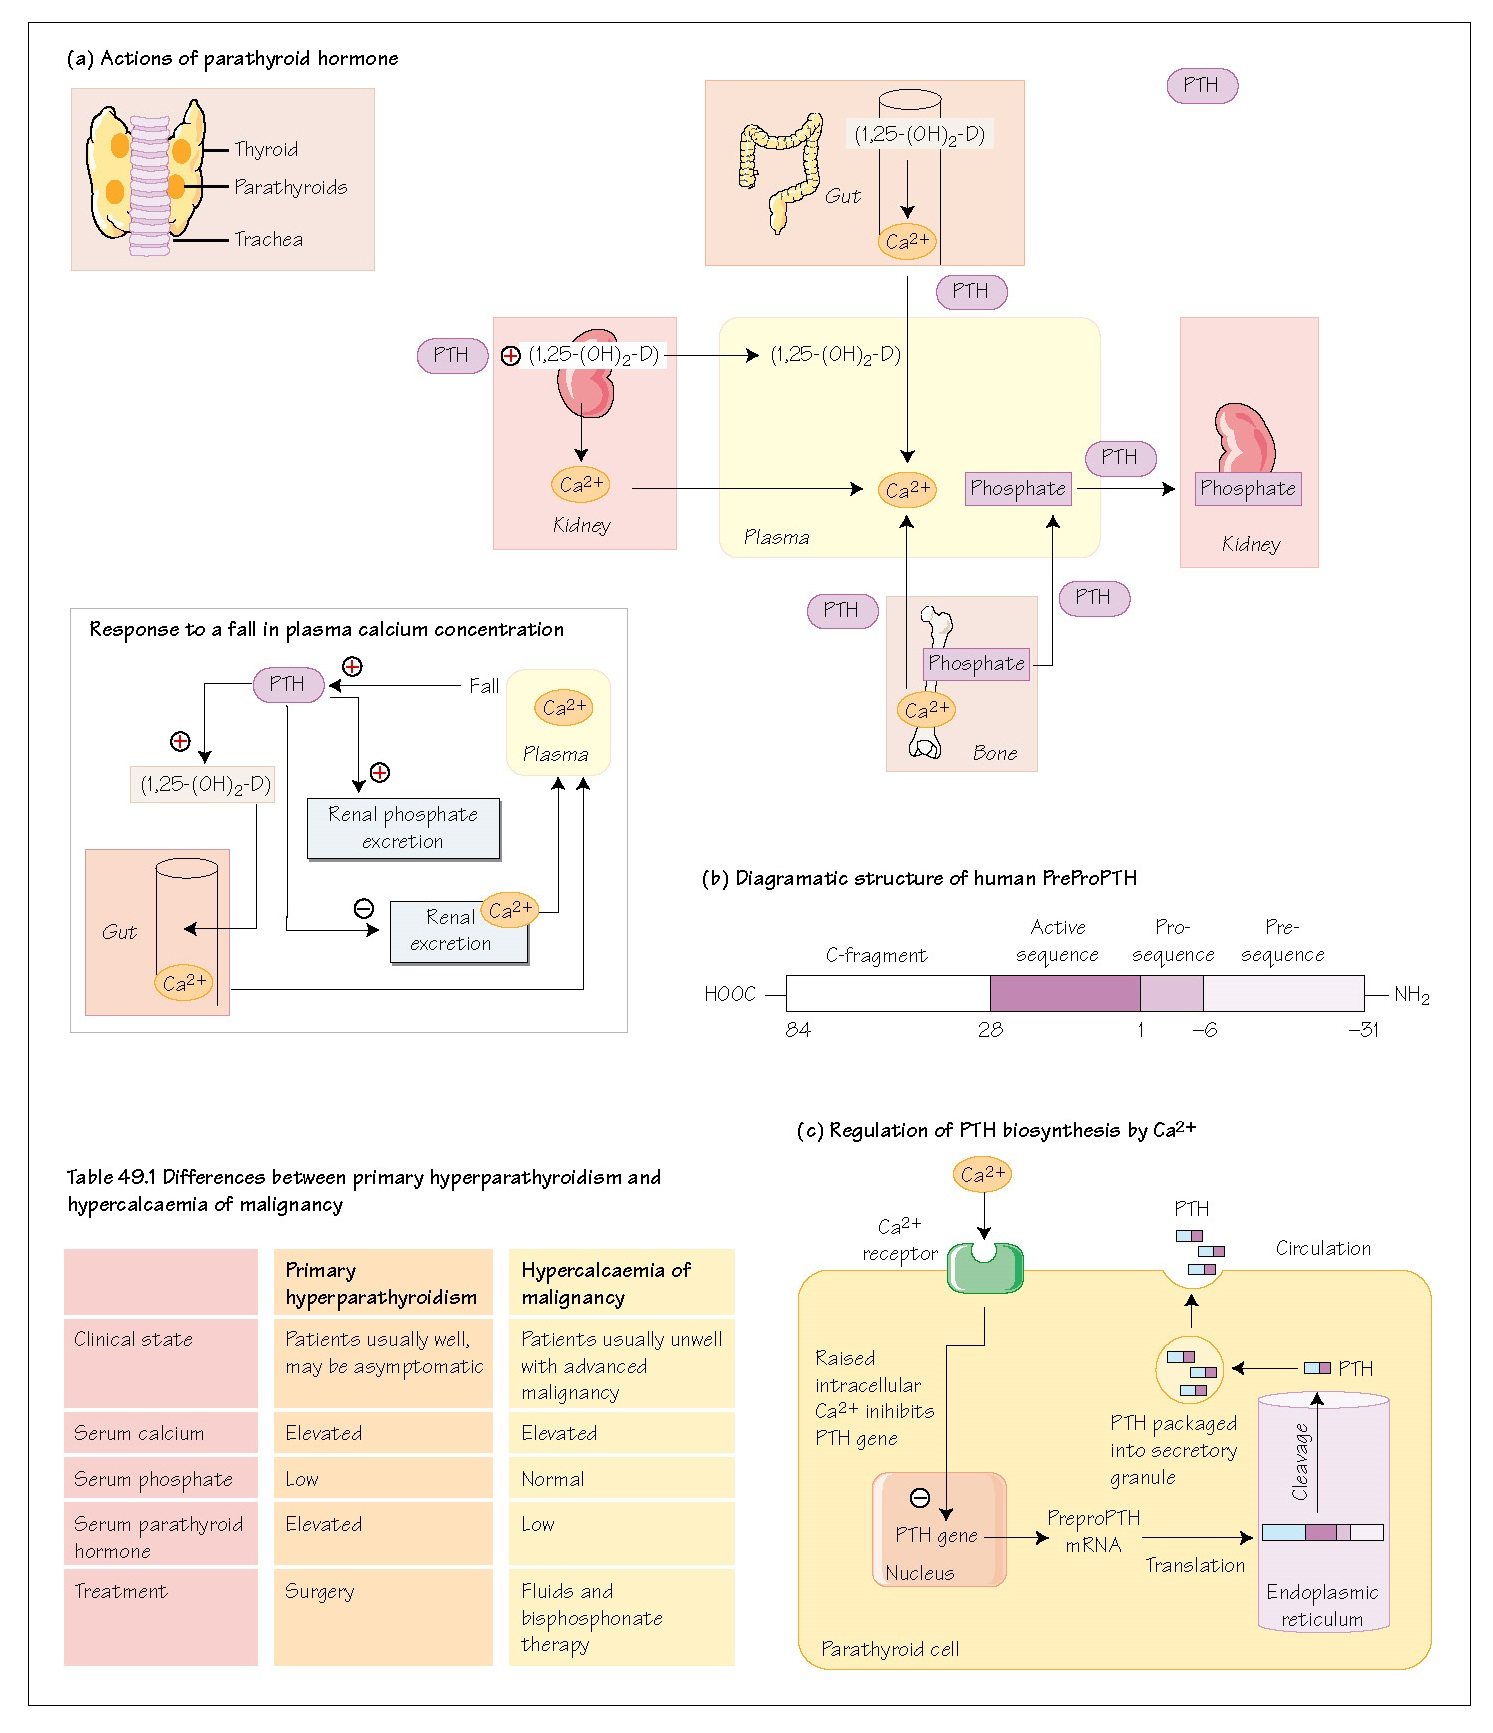 Parathyroid Hormone, parathyroid glands, Physiological actions of PTH, Gastrointestinal tract, Pathophysiology of PTH, Hyperparathyroidism, Hypoparathyroidism